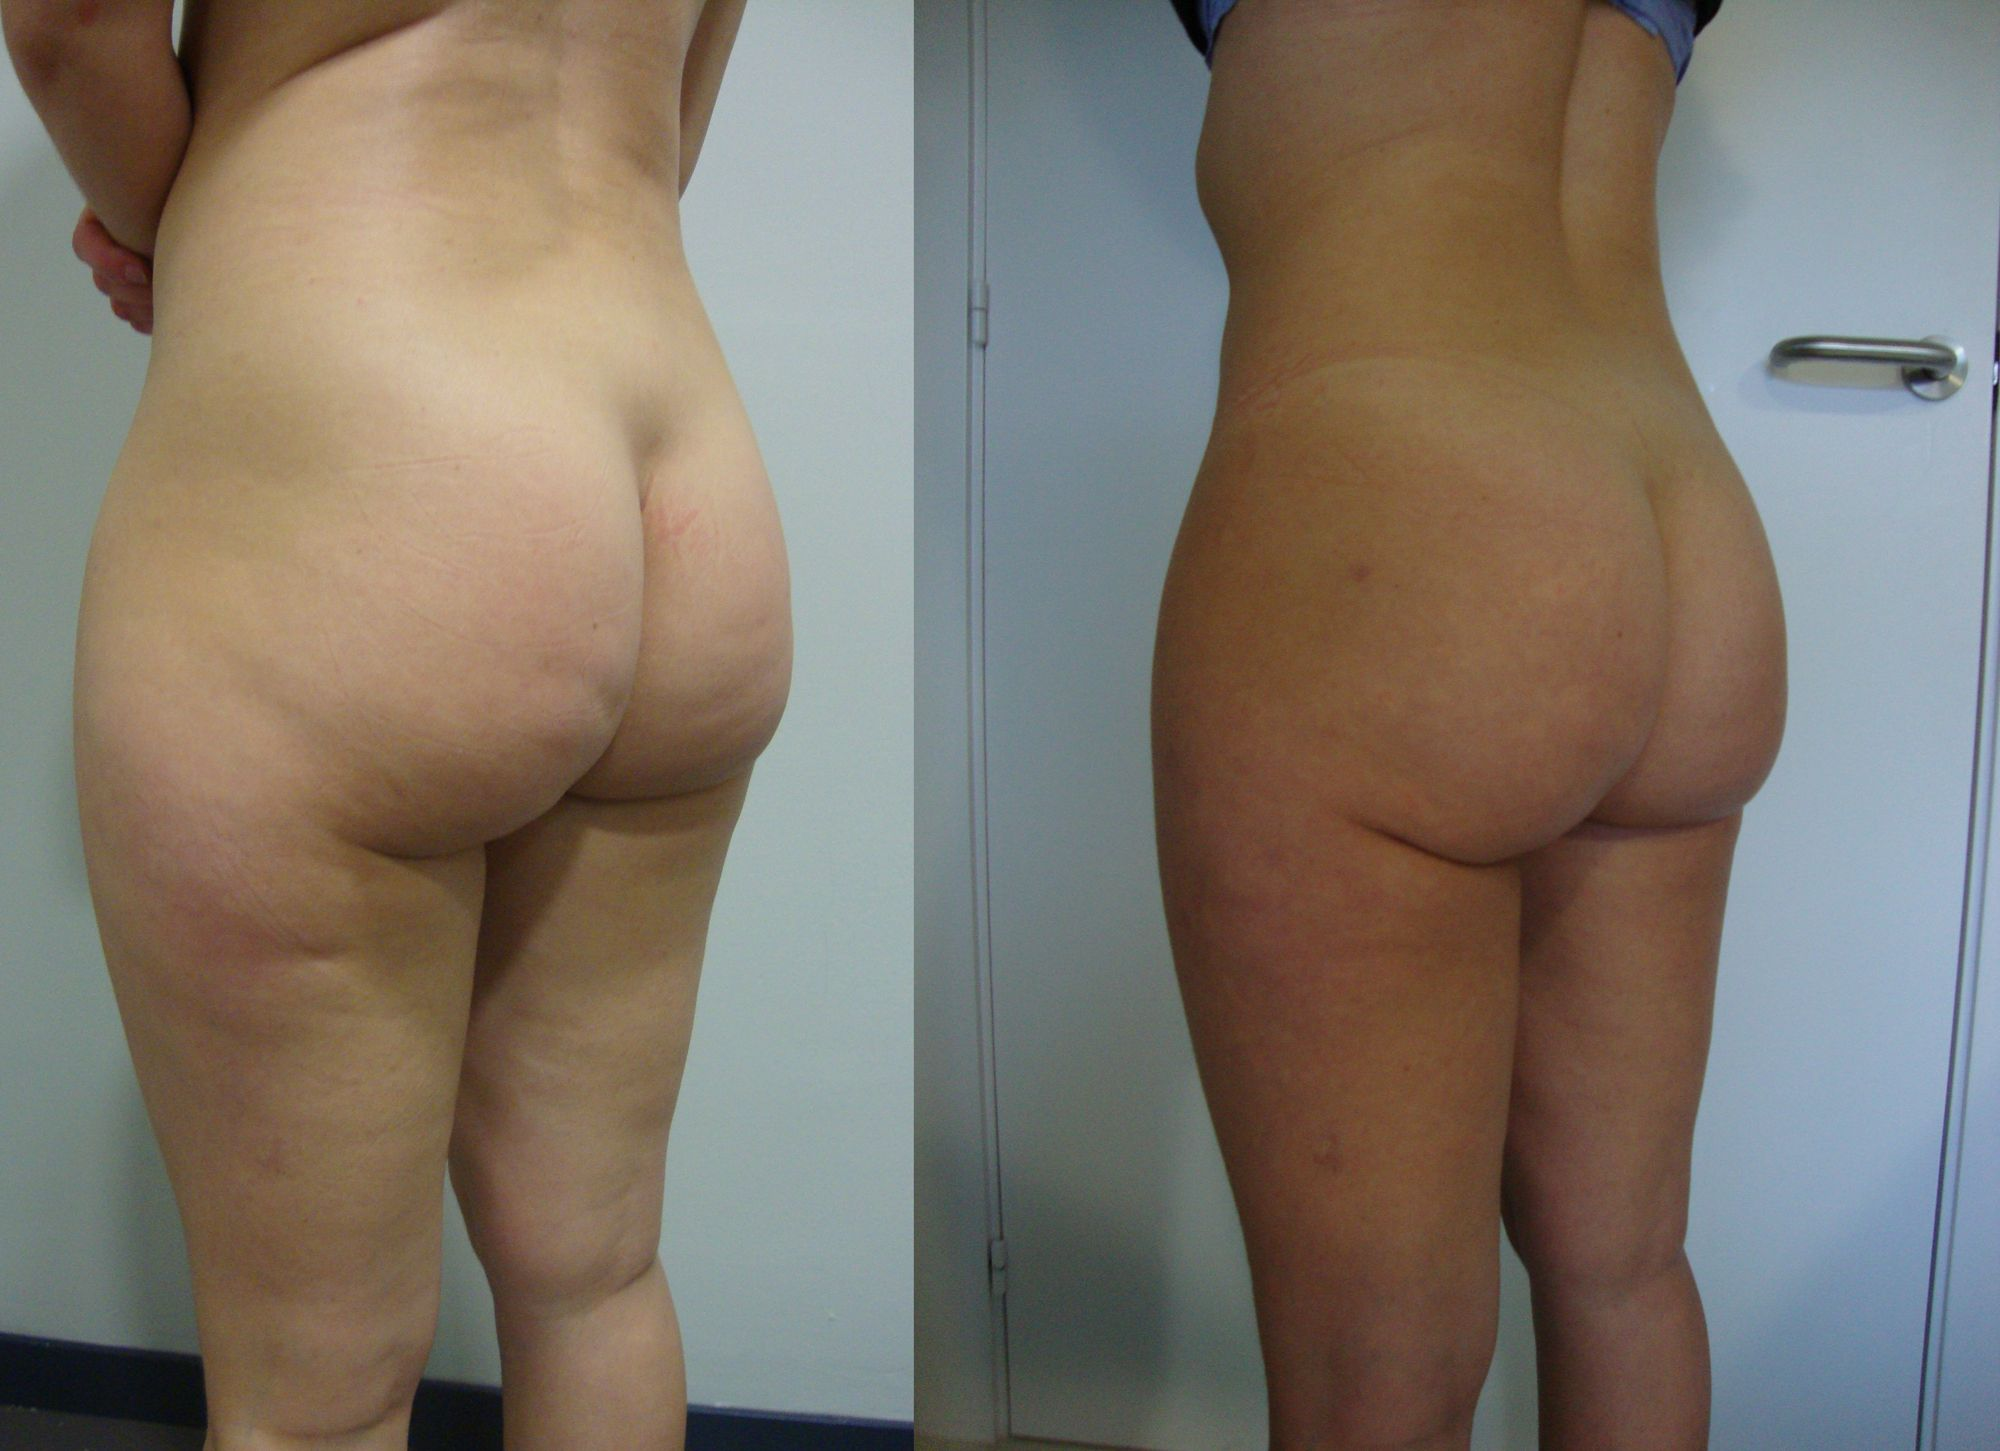 Leg liposuction - Picture 2